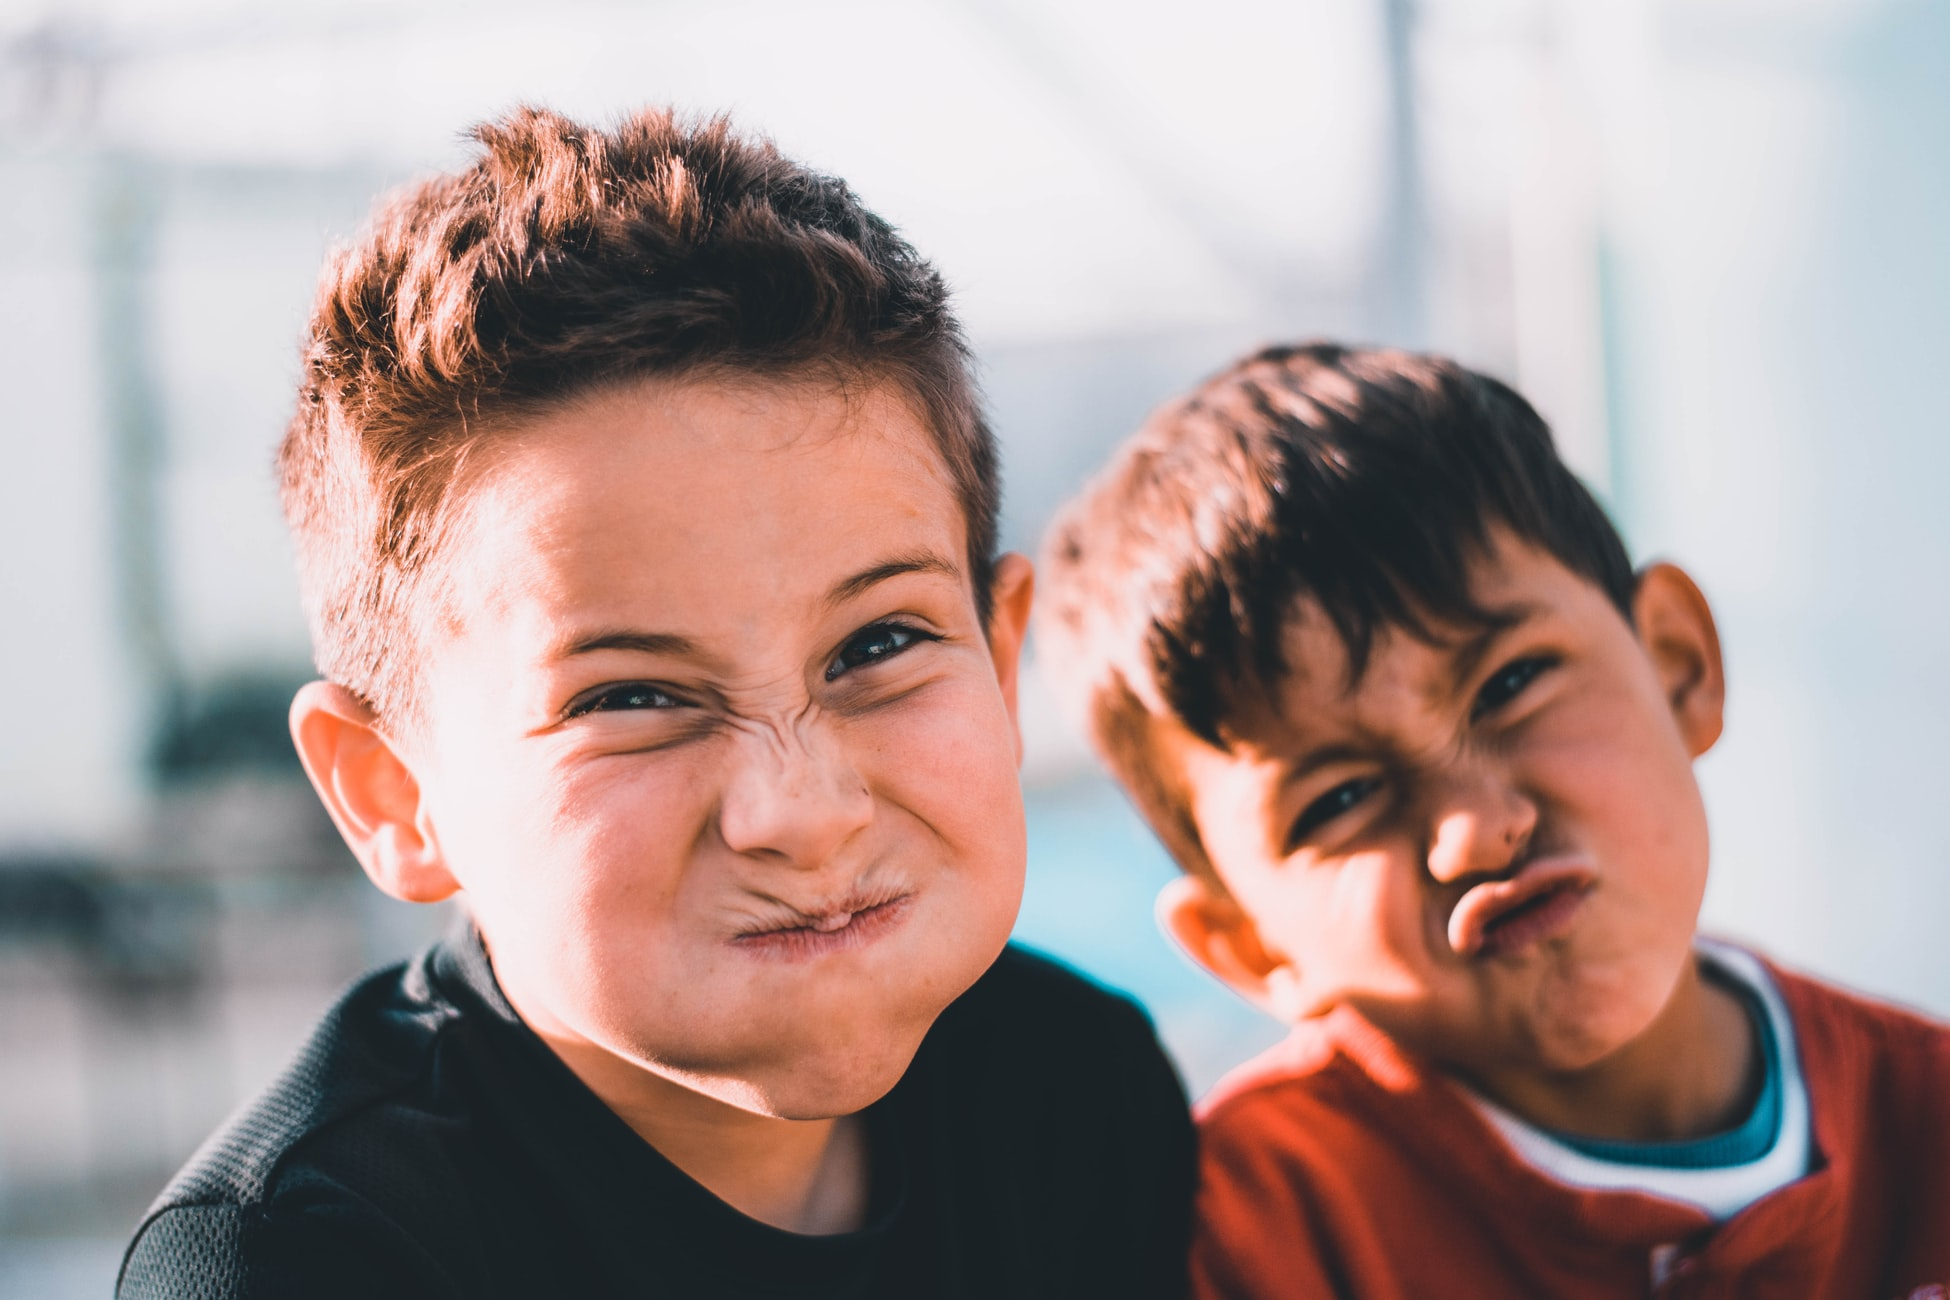 funny smiling kids - what to do when you're bored